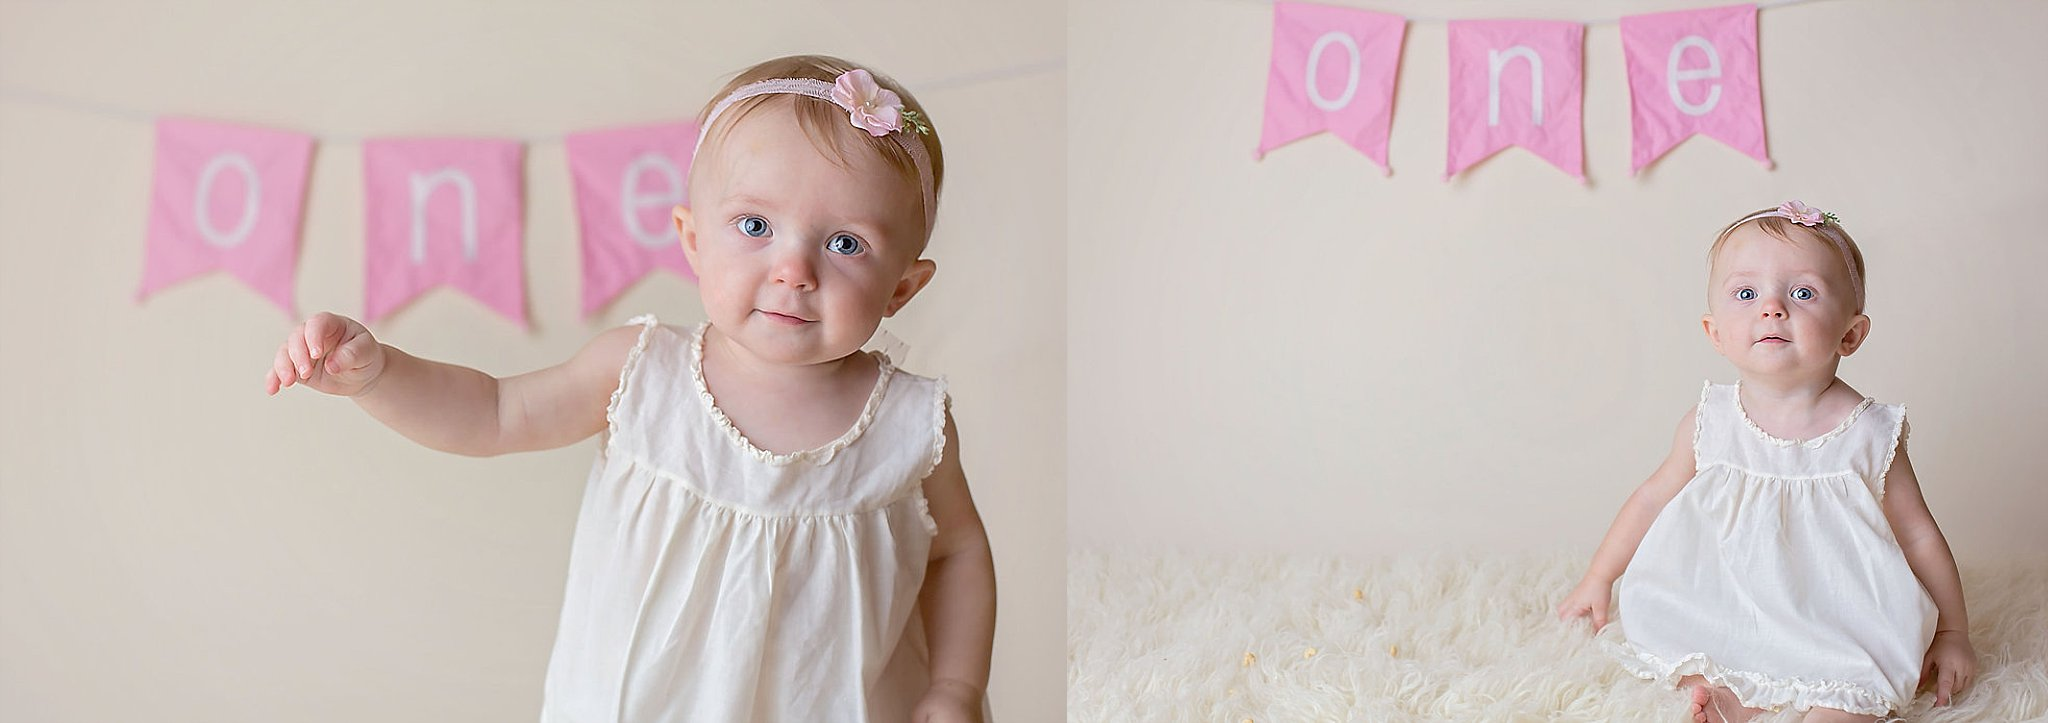 Pinehurst baby stands and smiles for photographer on white background.